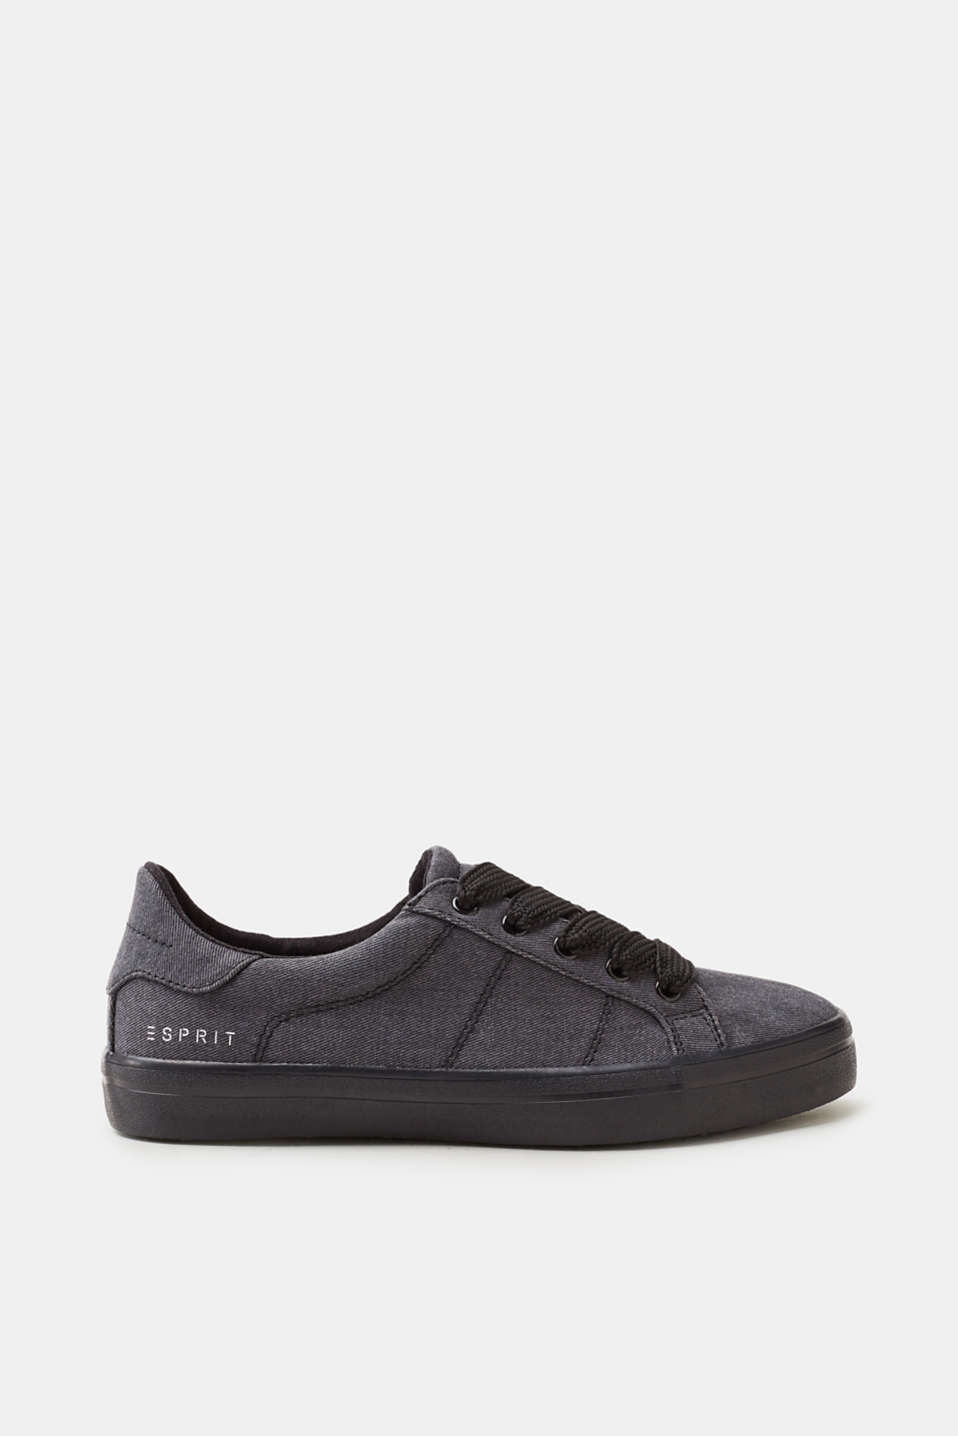 Esprit - Textile trainers with striking shoelaces